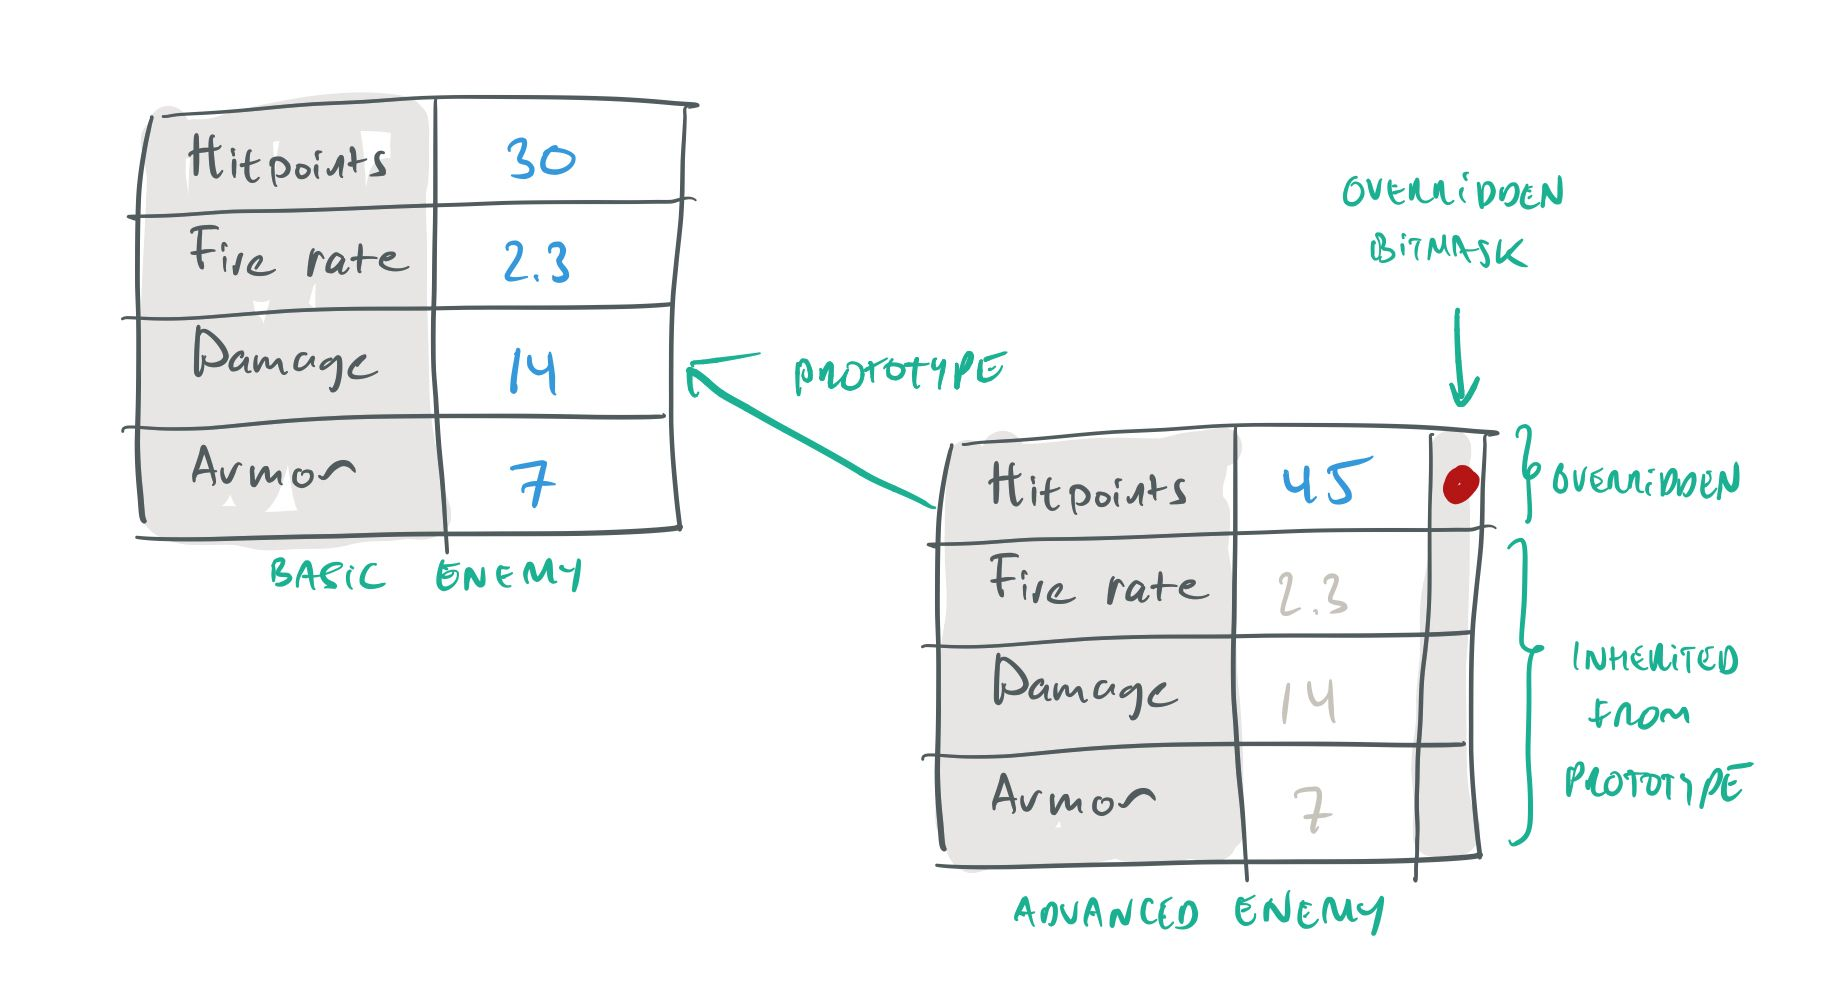 Prototypes, instances and override bitmasks.